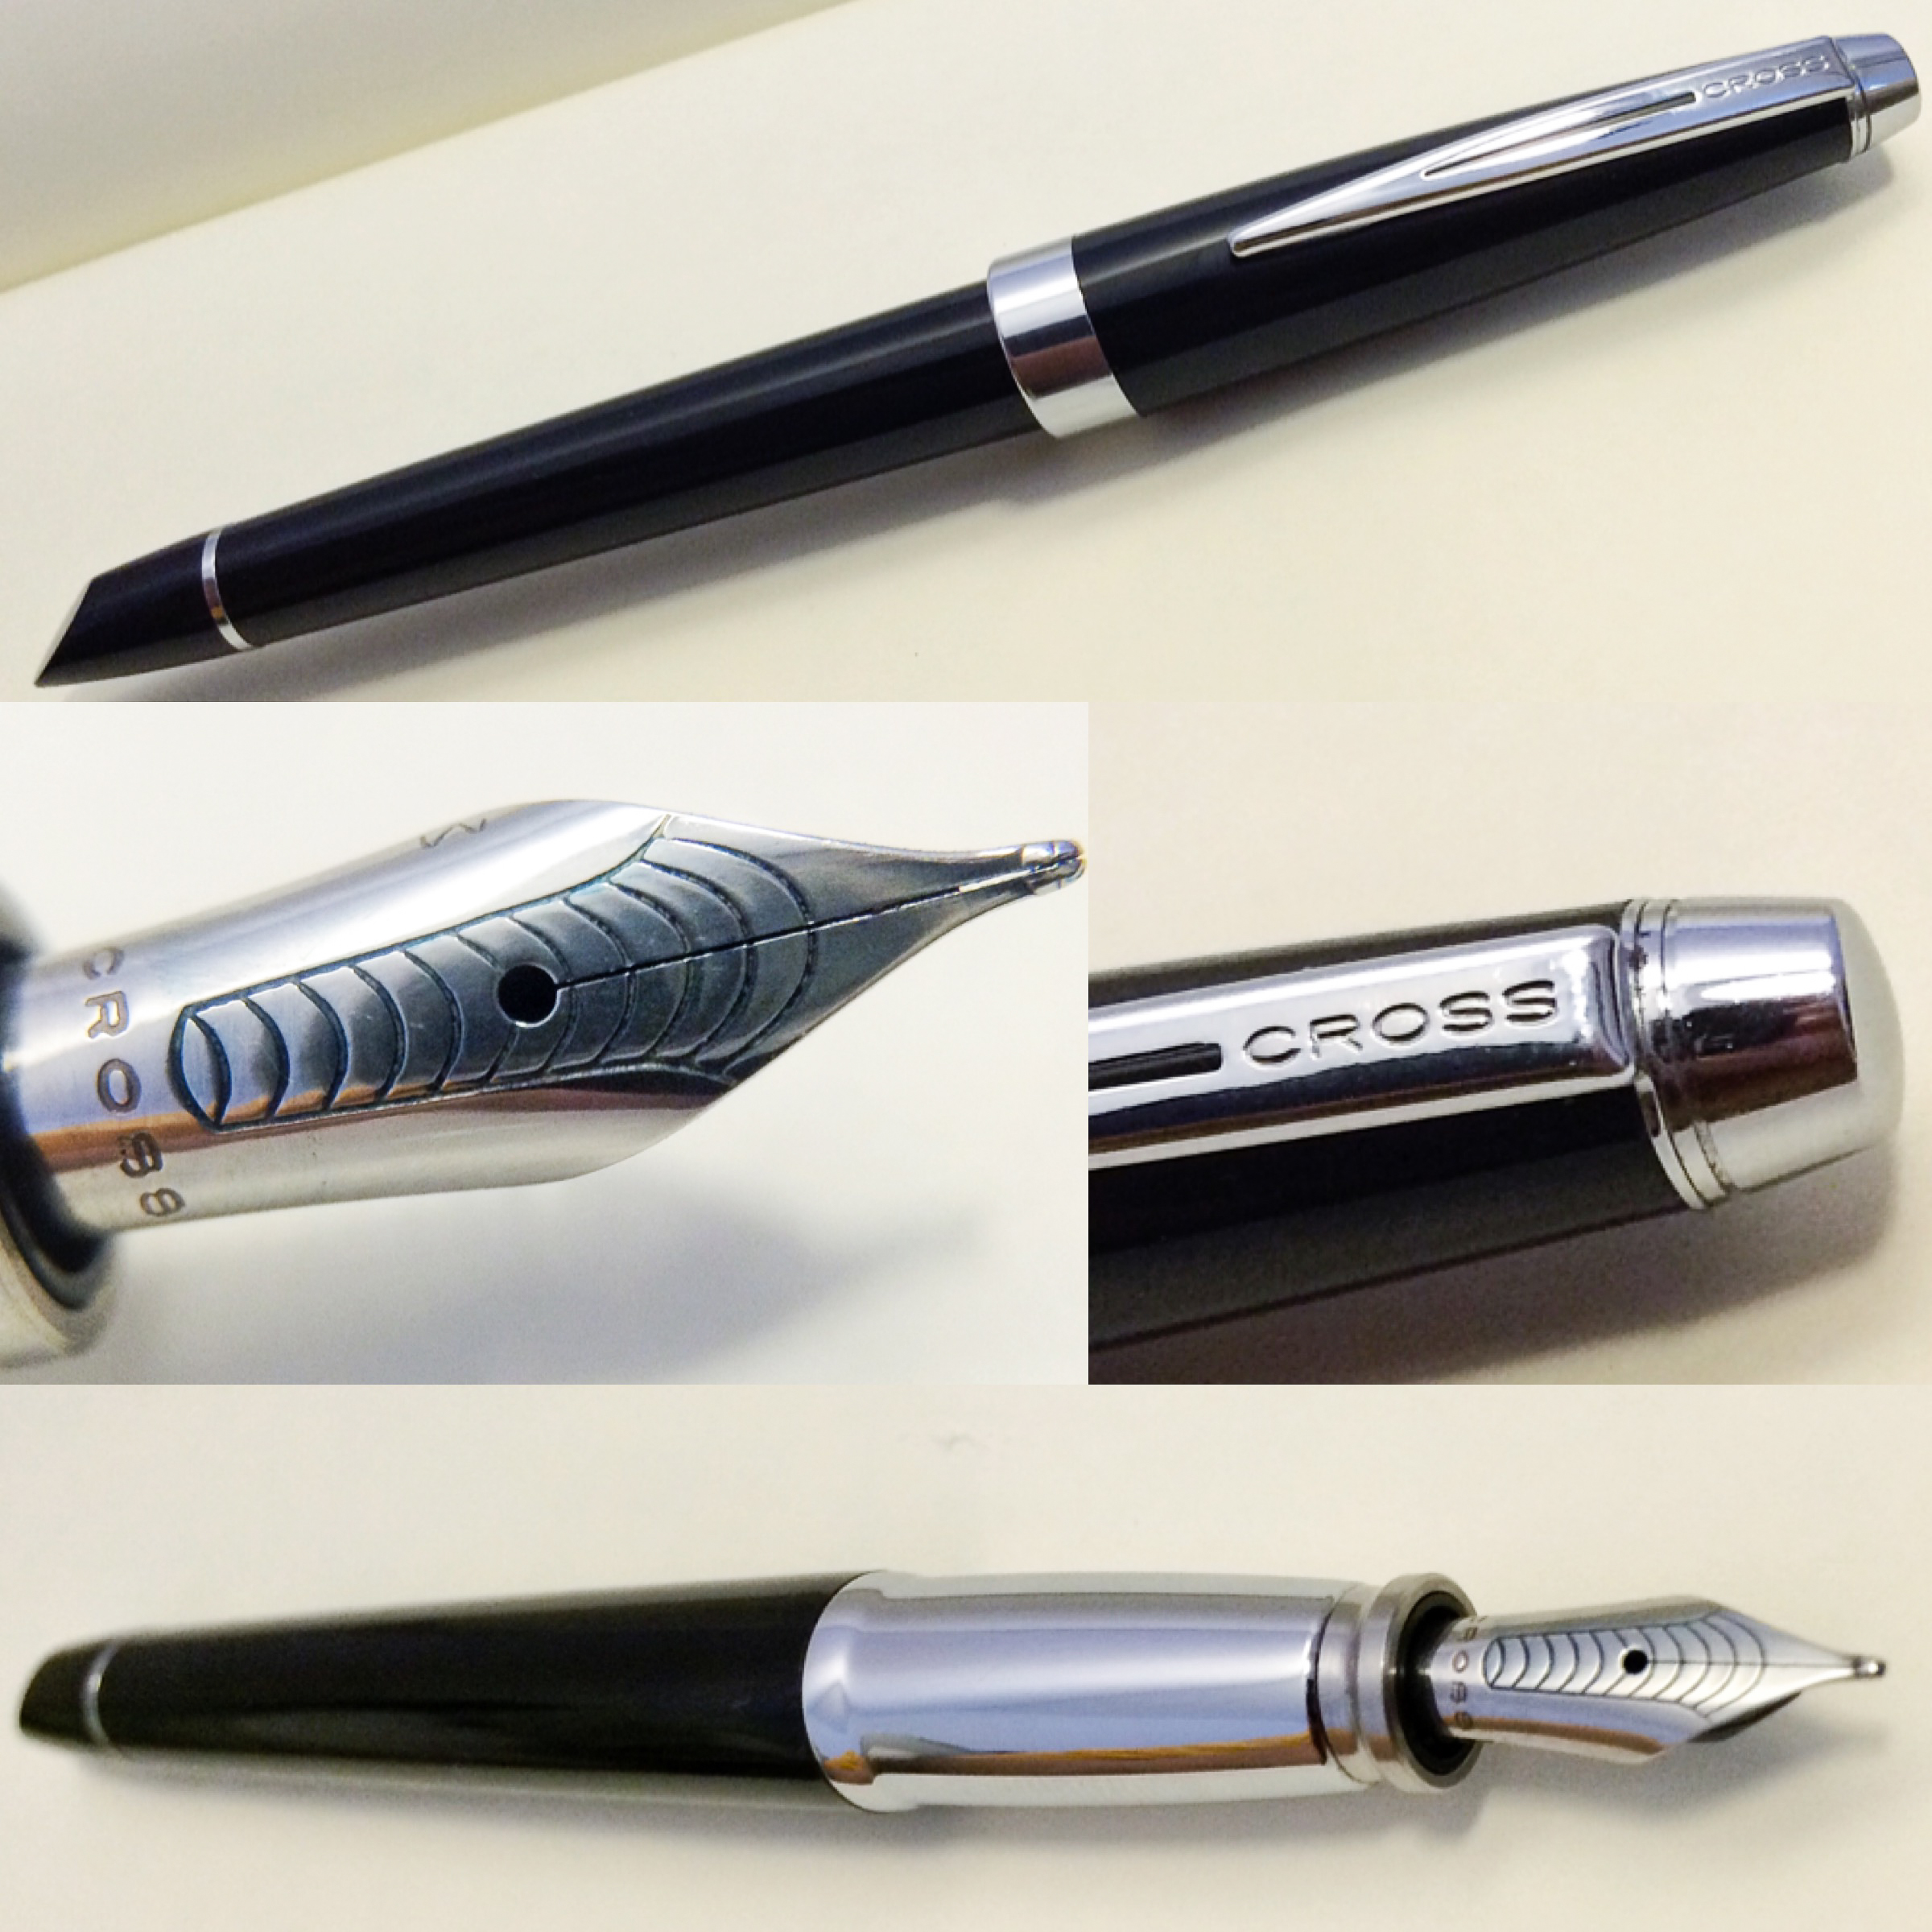 The Cross Aventura: Franz's first fountain pen